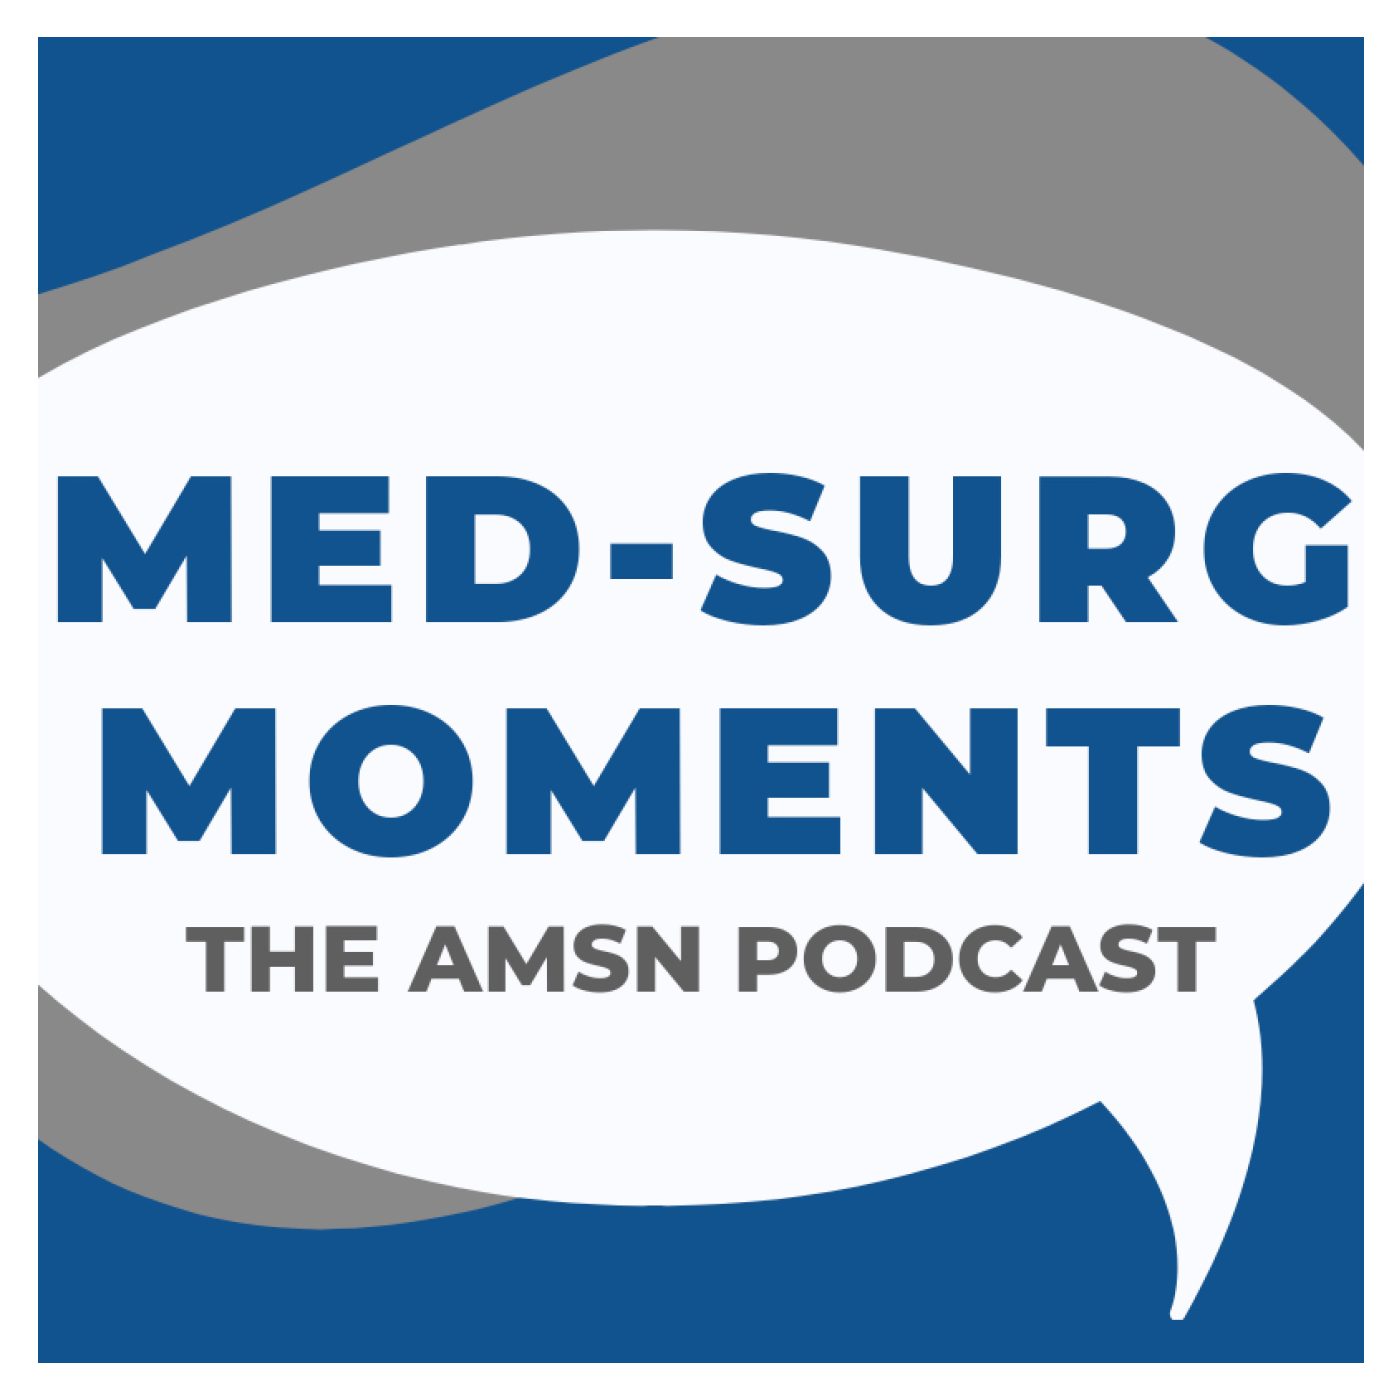 """Artwork for """"Meet the Co-Hosts"""" Video Series - Episode 1 - How We Became Co-Hosts of Med-Surg Moments"""